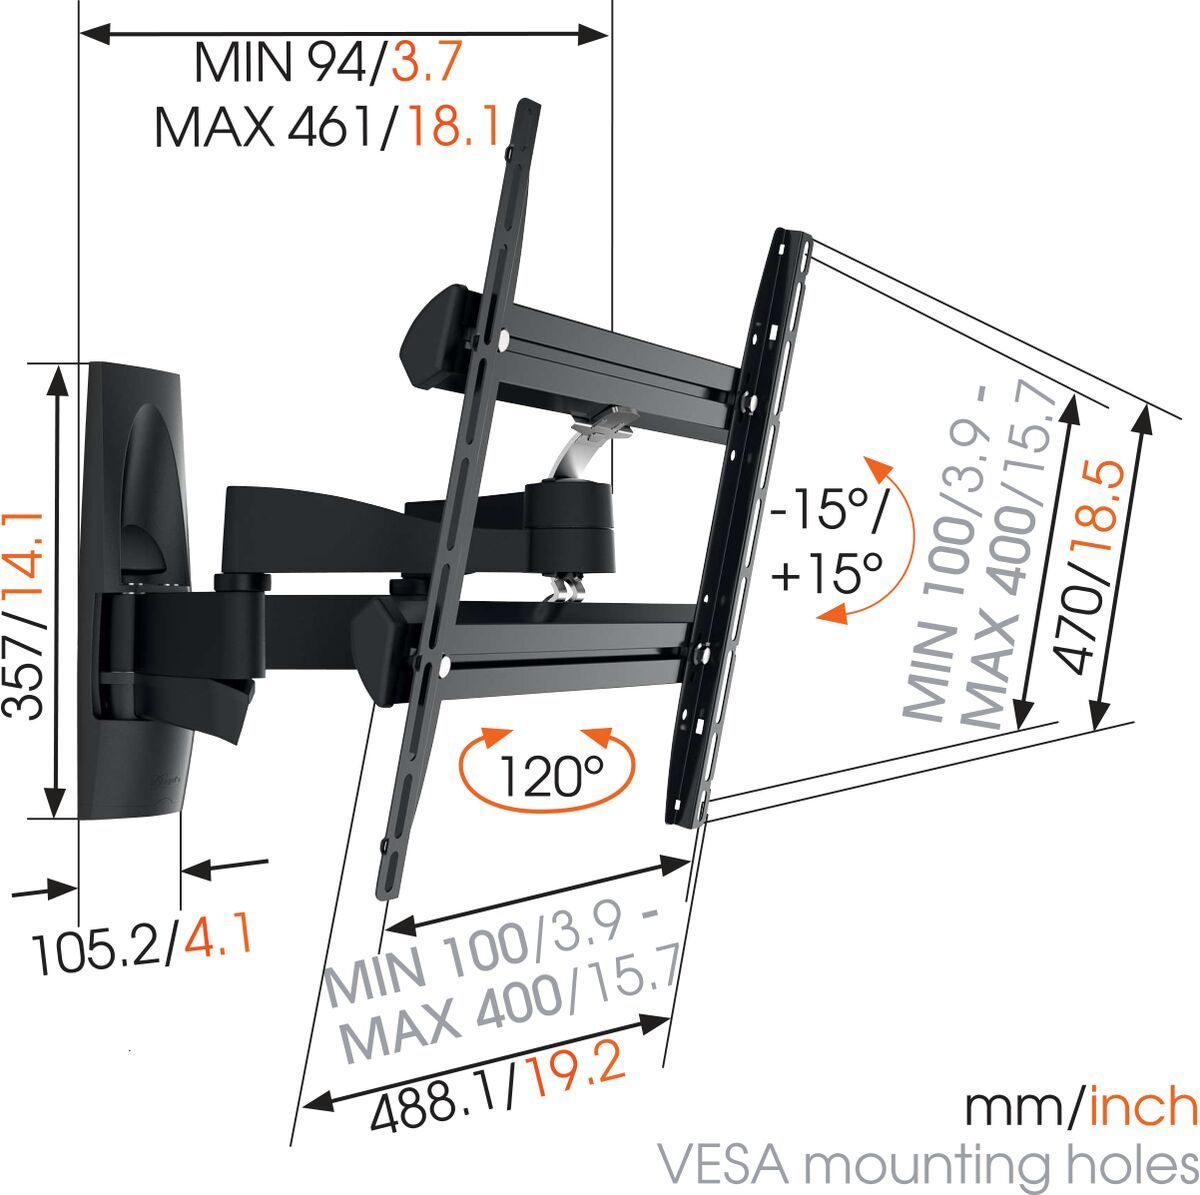 Vogel's WALL 2250 Full-Motion TV Wall Mount - Suitable for 32 up to 55 inch TVs - Forward and turning motion (up to 120°) - Tilt up to 15° - Dimensions